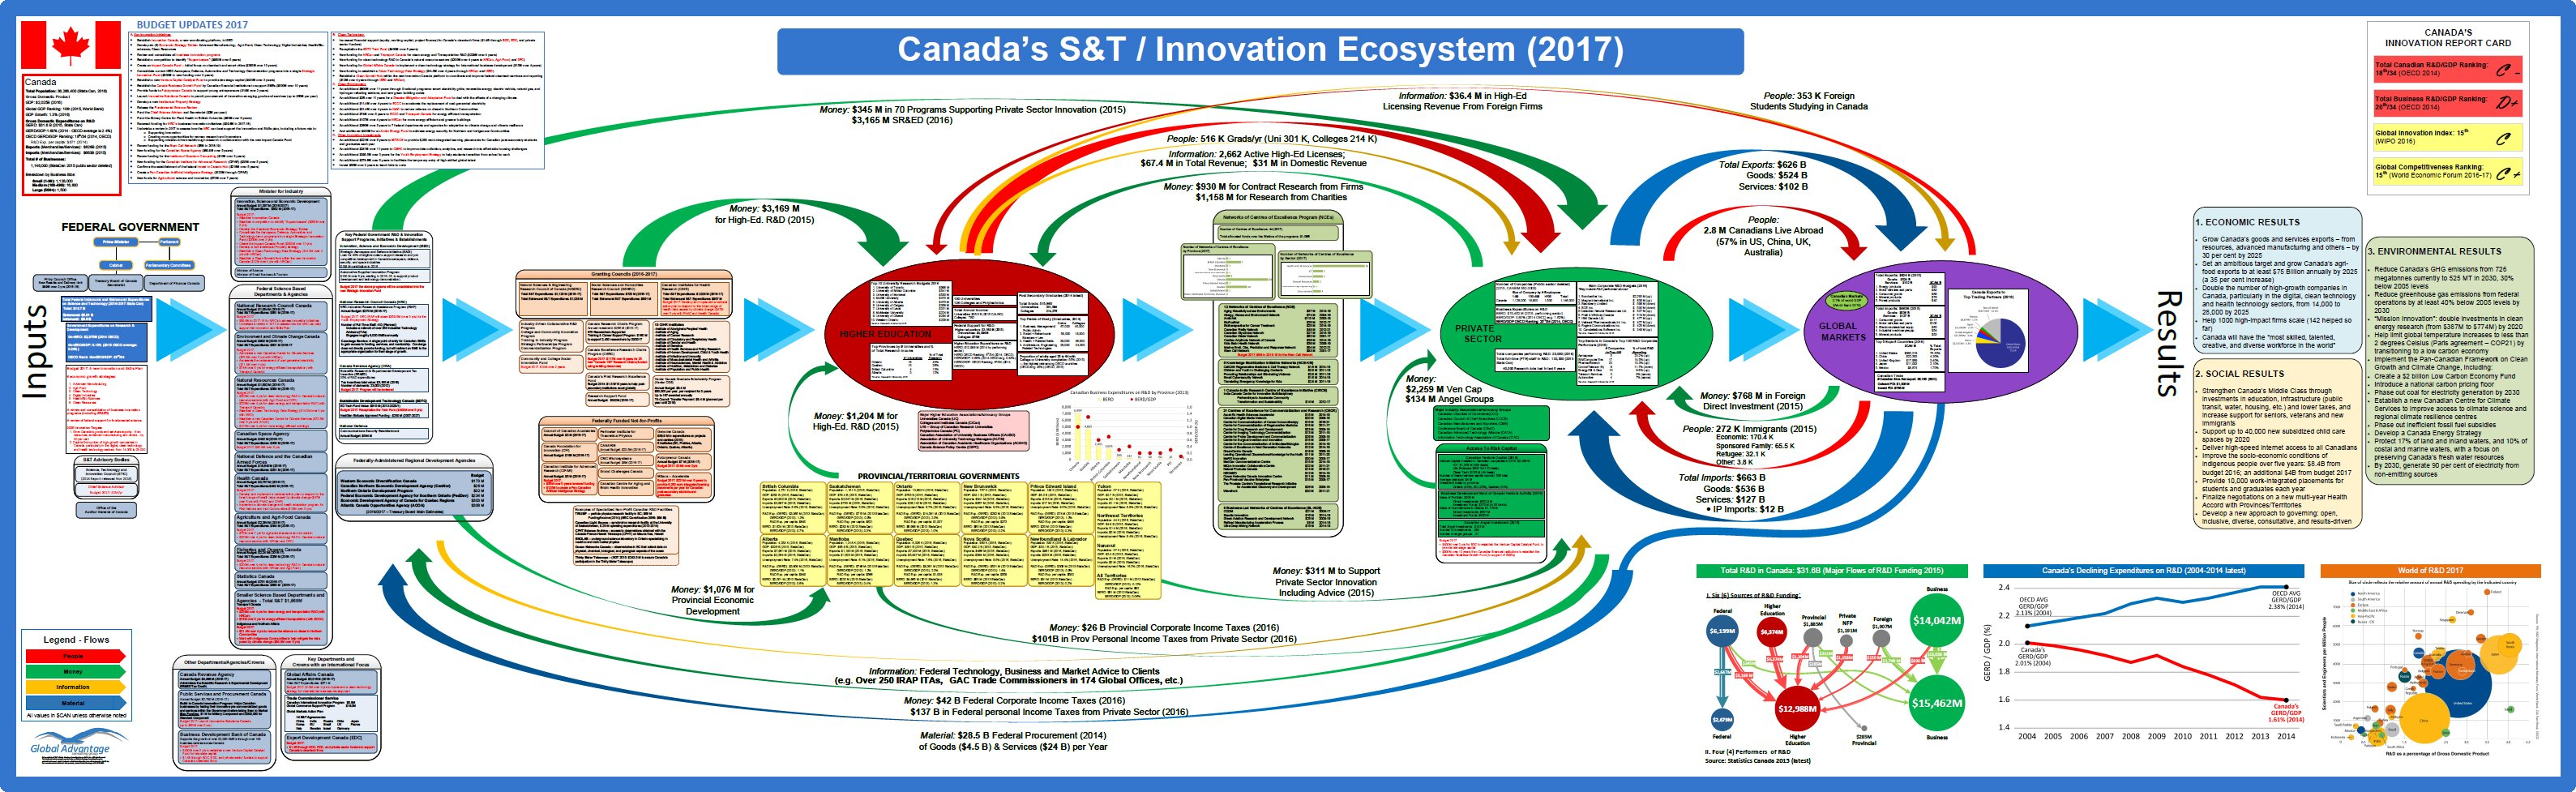 Canada's Federal S&T/Innovation Ecosystem